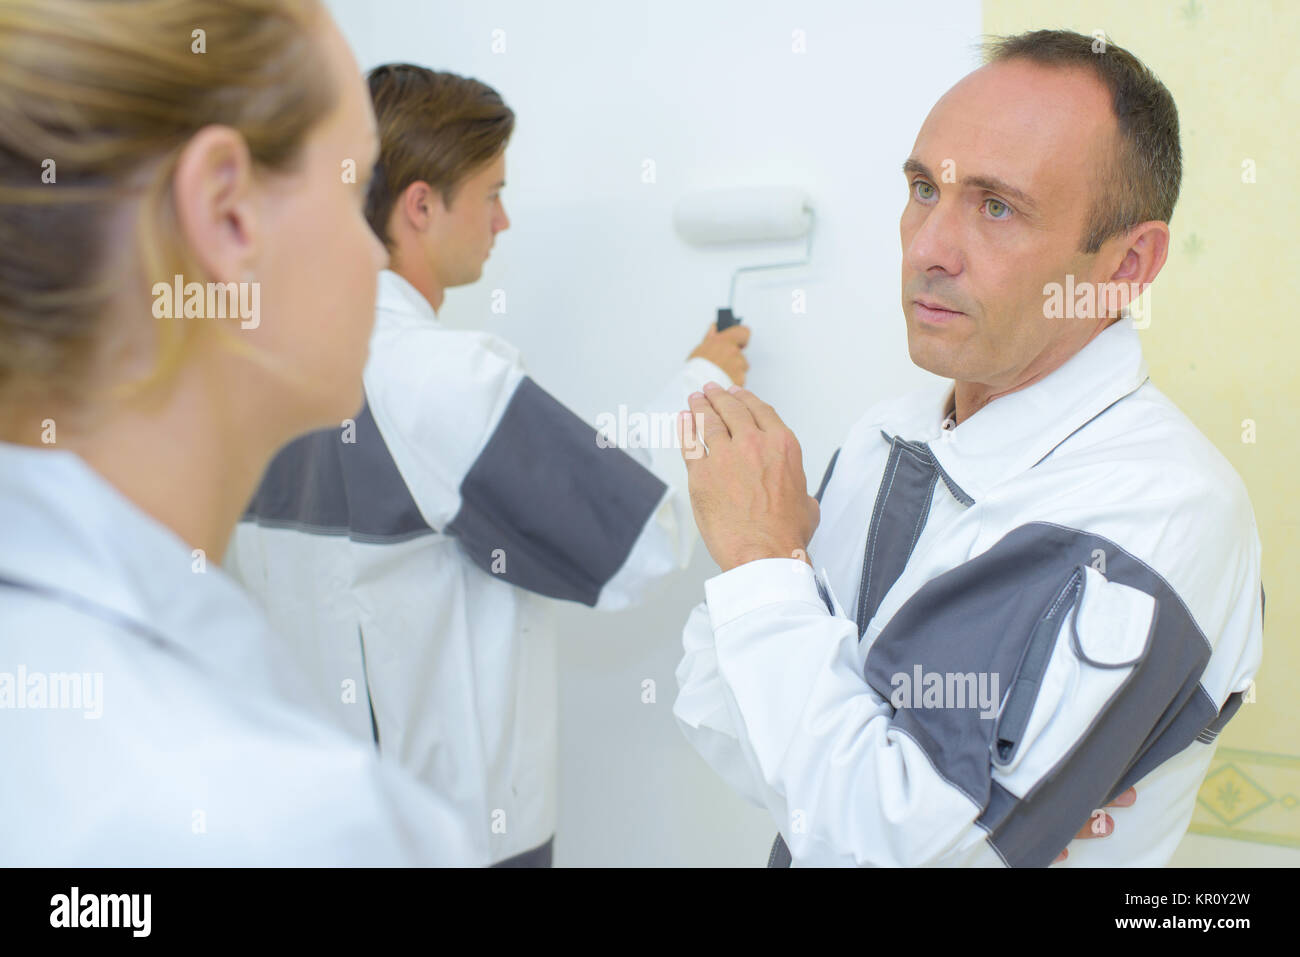 wall painting - Stock Image